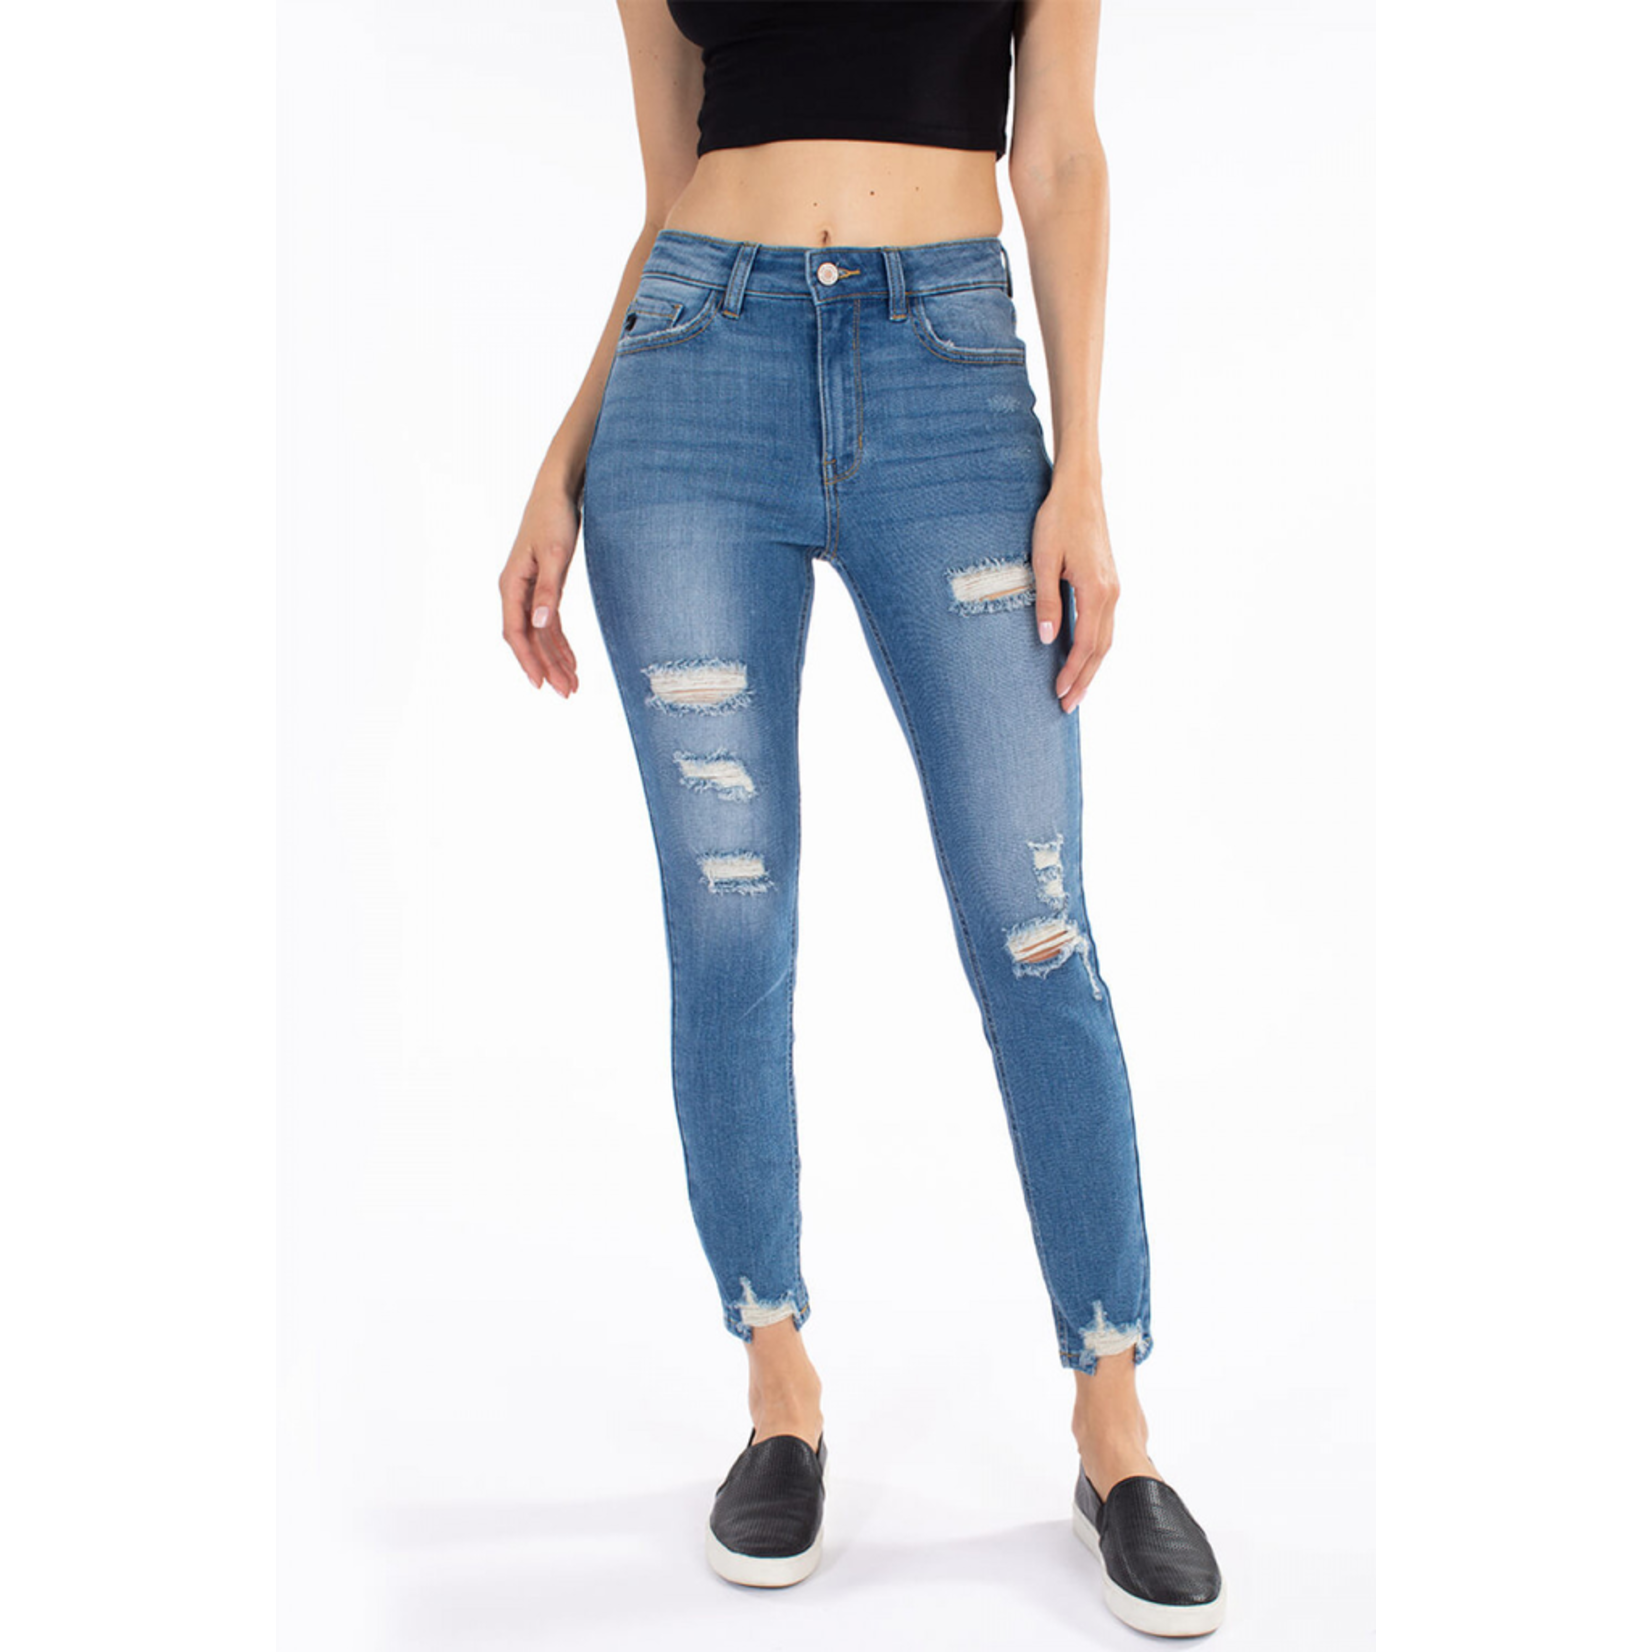 KanCan High Rise Ankle Distressed Skinny